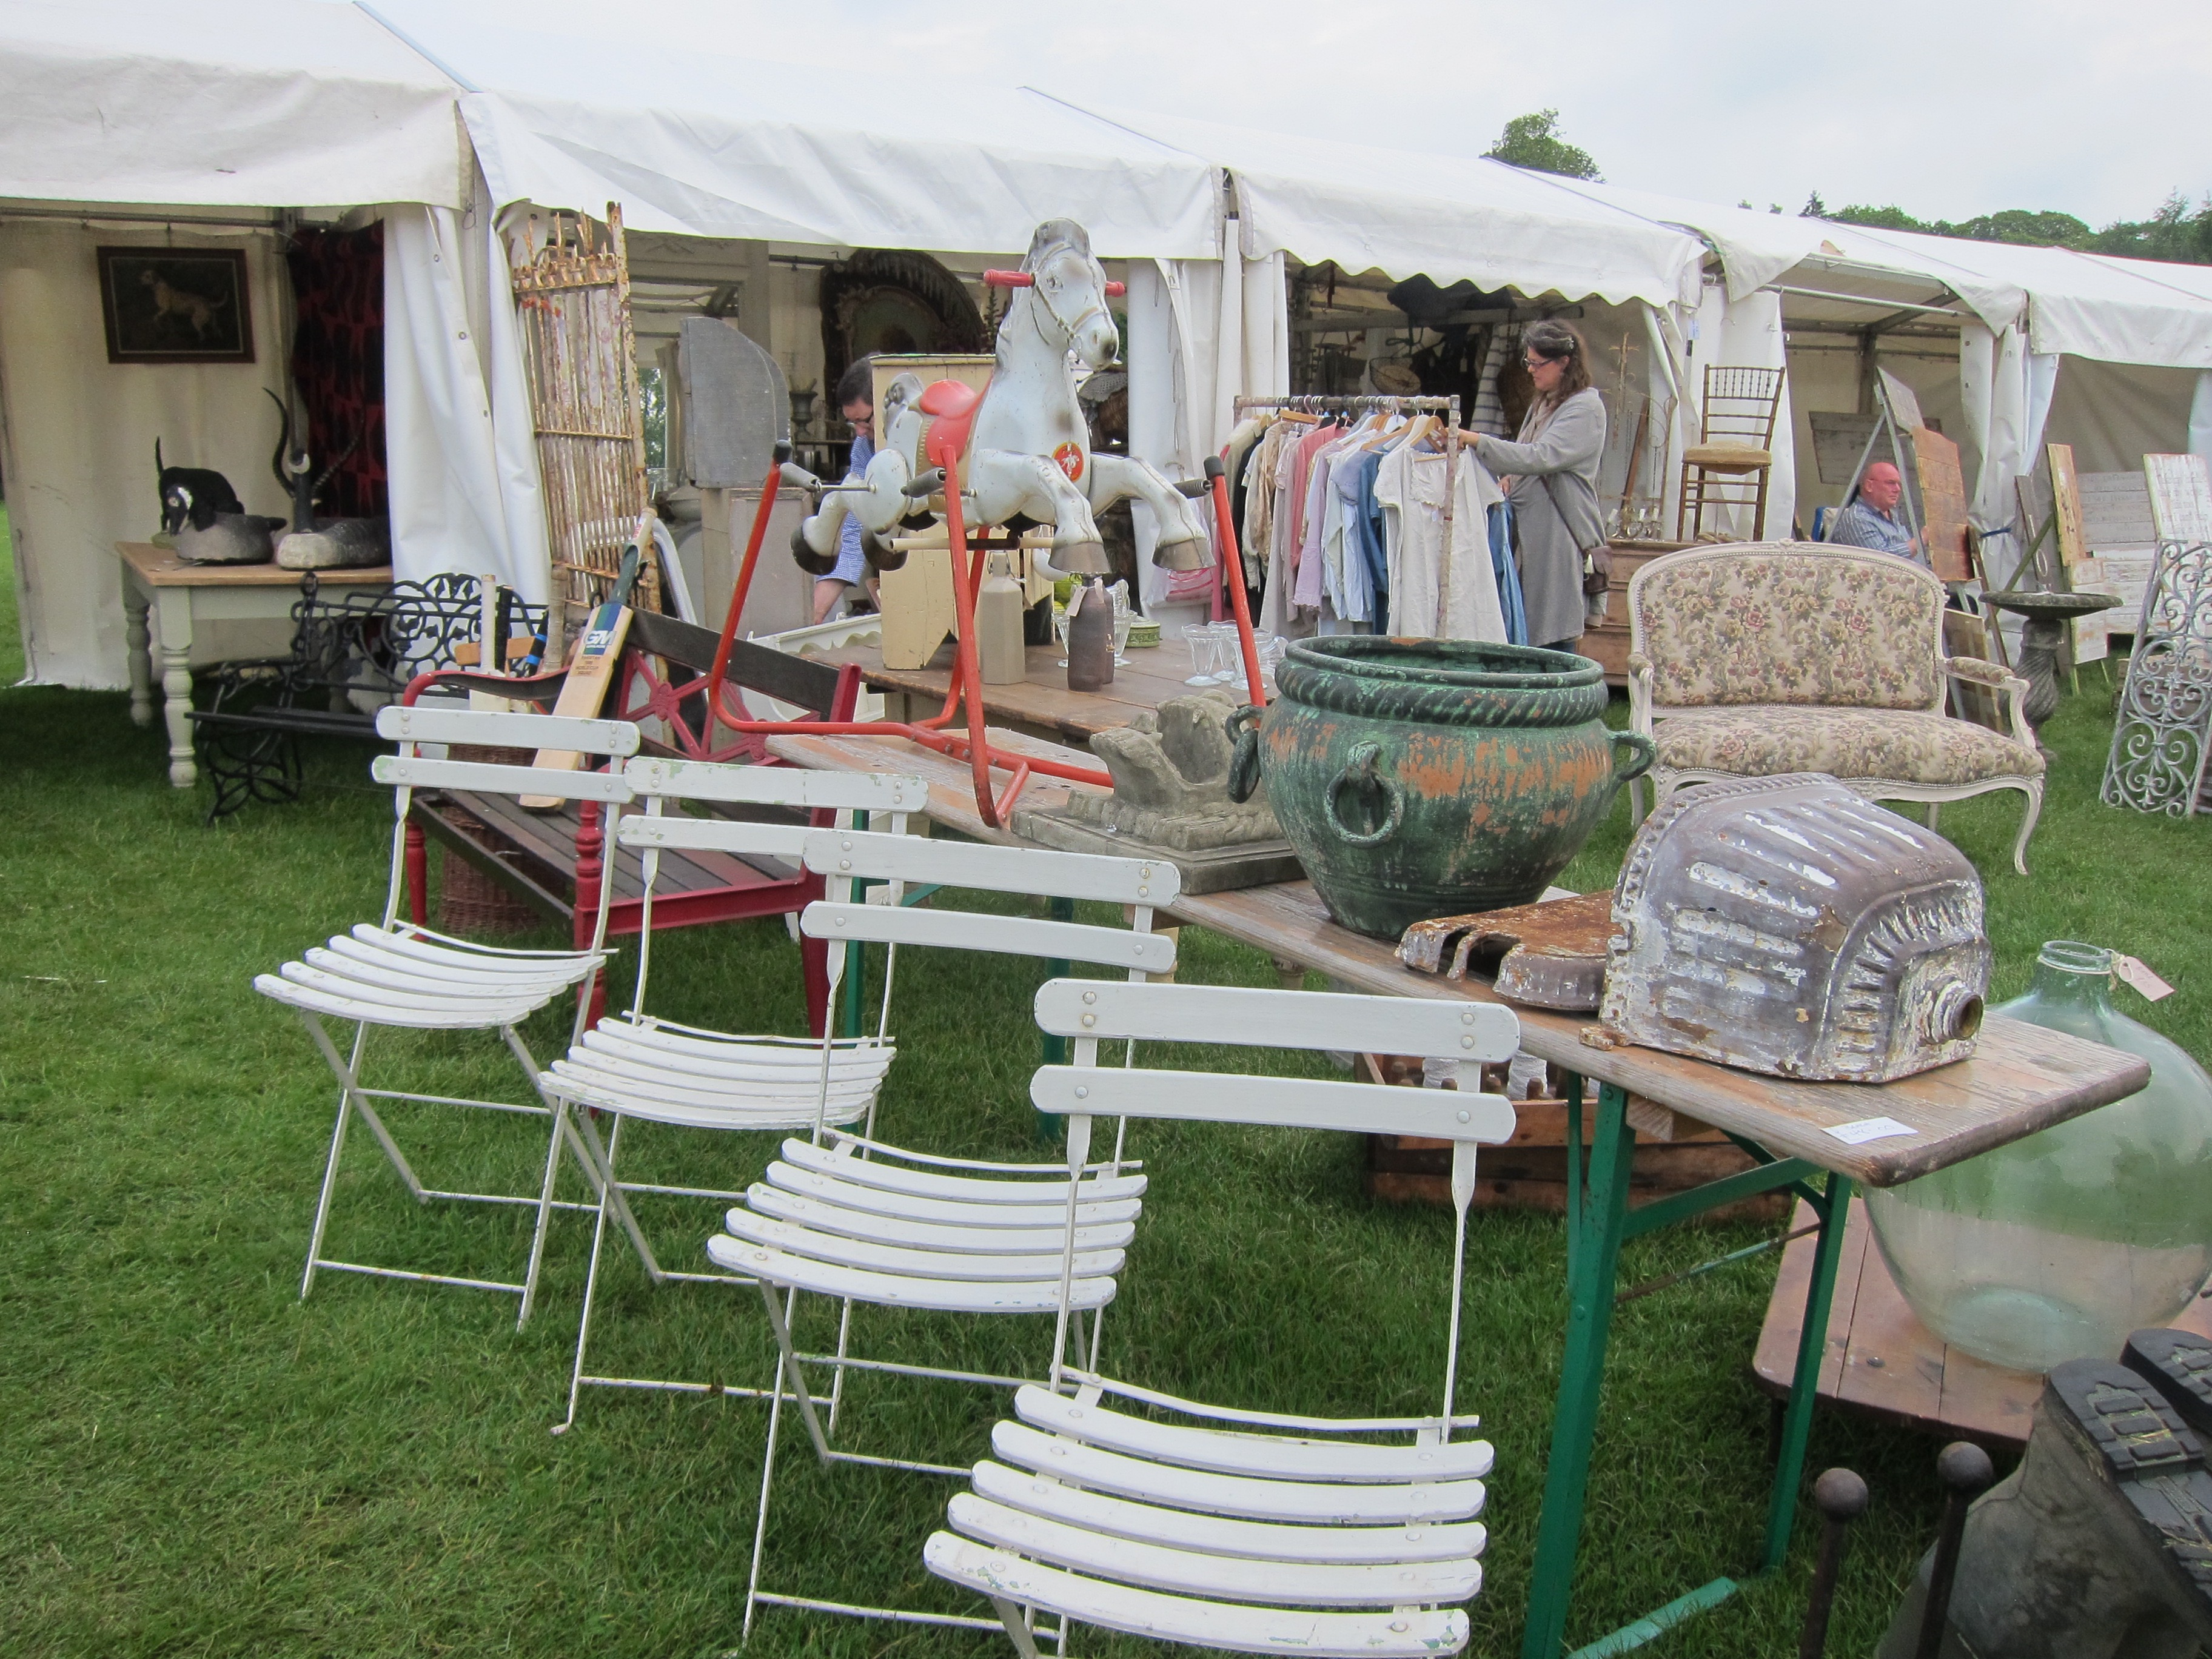 Decorative Home and Salvage Show